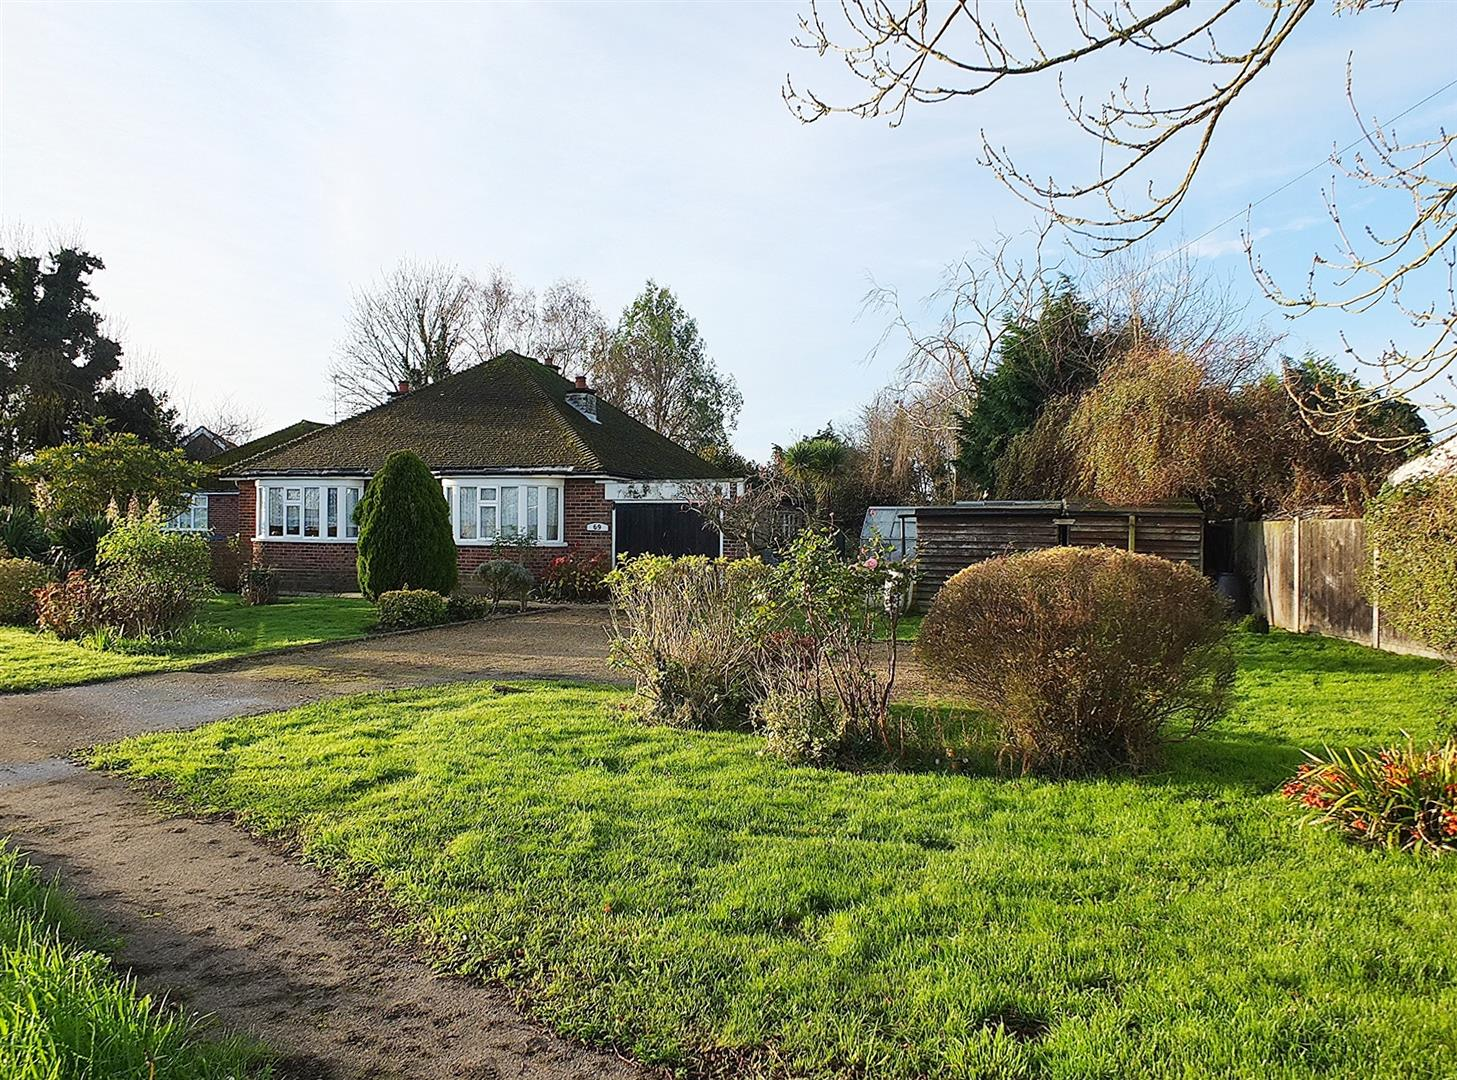 3 bed detached bungalow for sale in Long Sutton Spalding, PE12 9JU, PE12